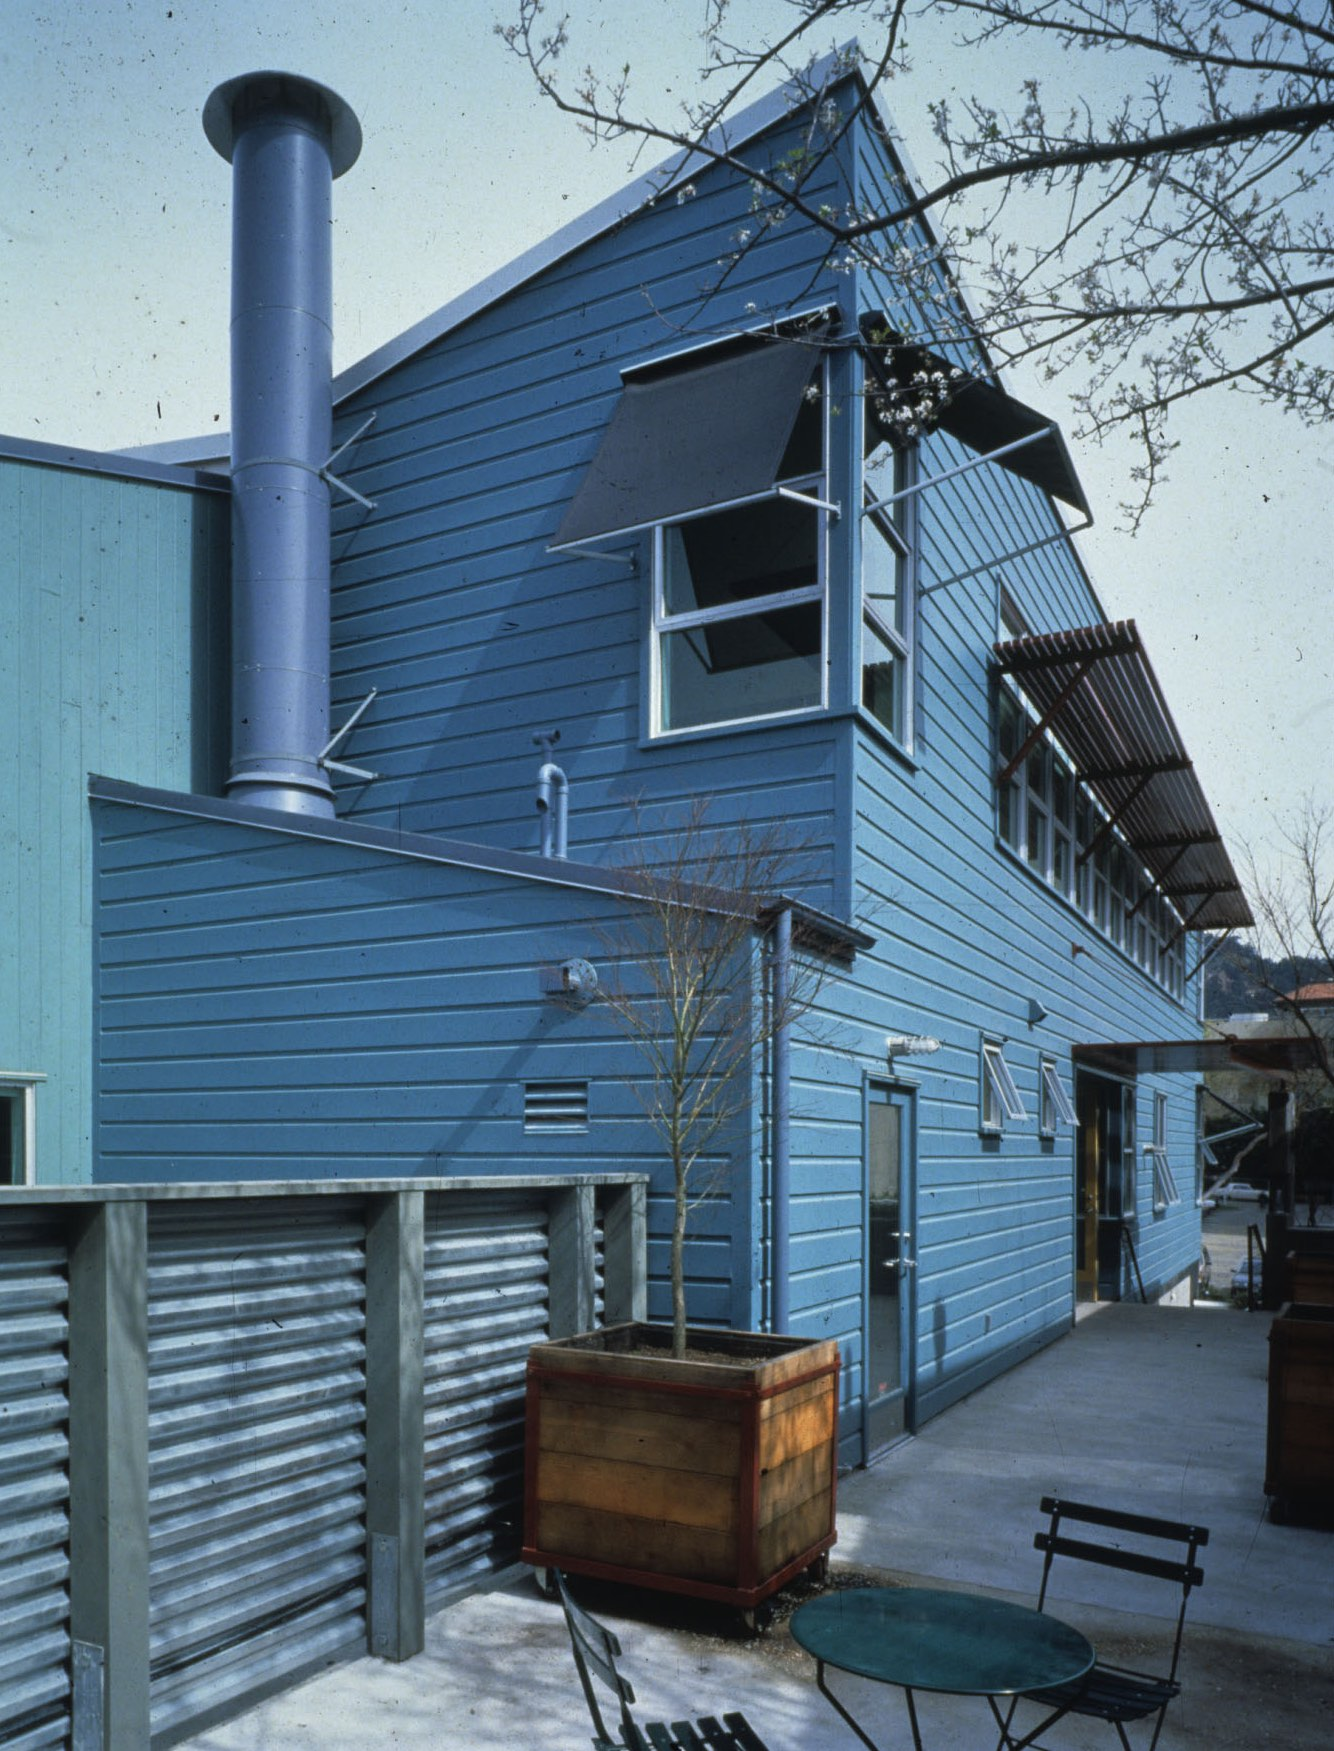 04 Tipping building-exterior-richard barnes-1996-53L.jpg